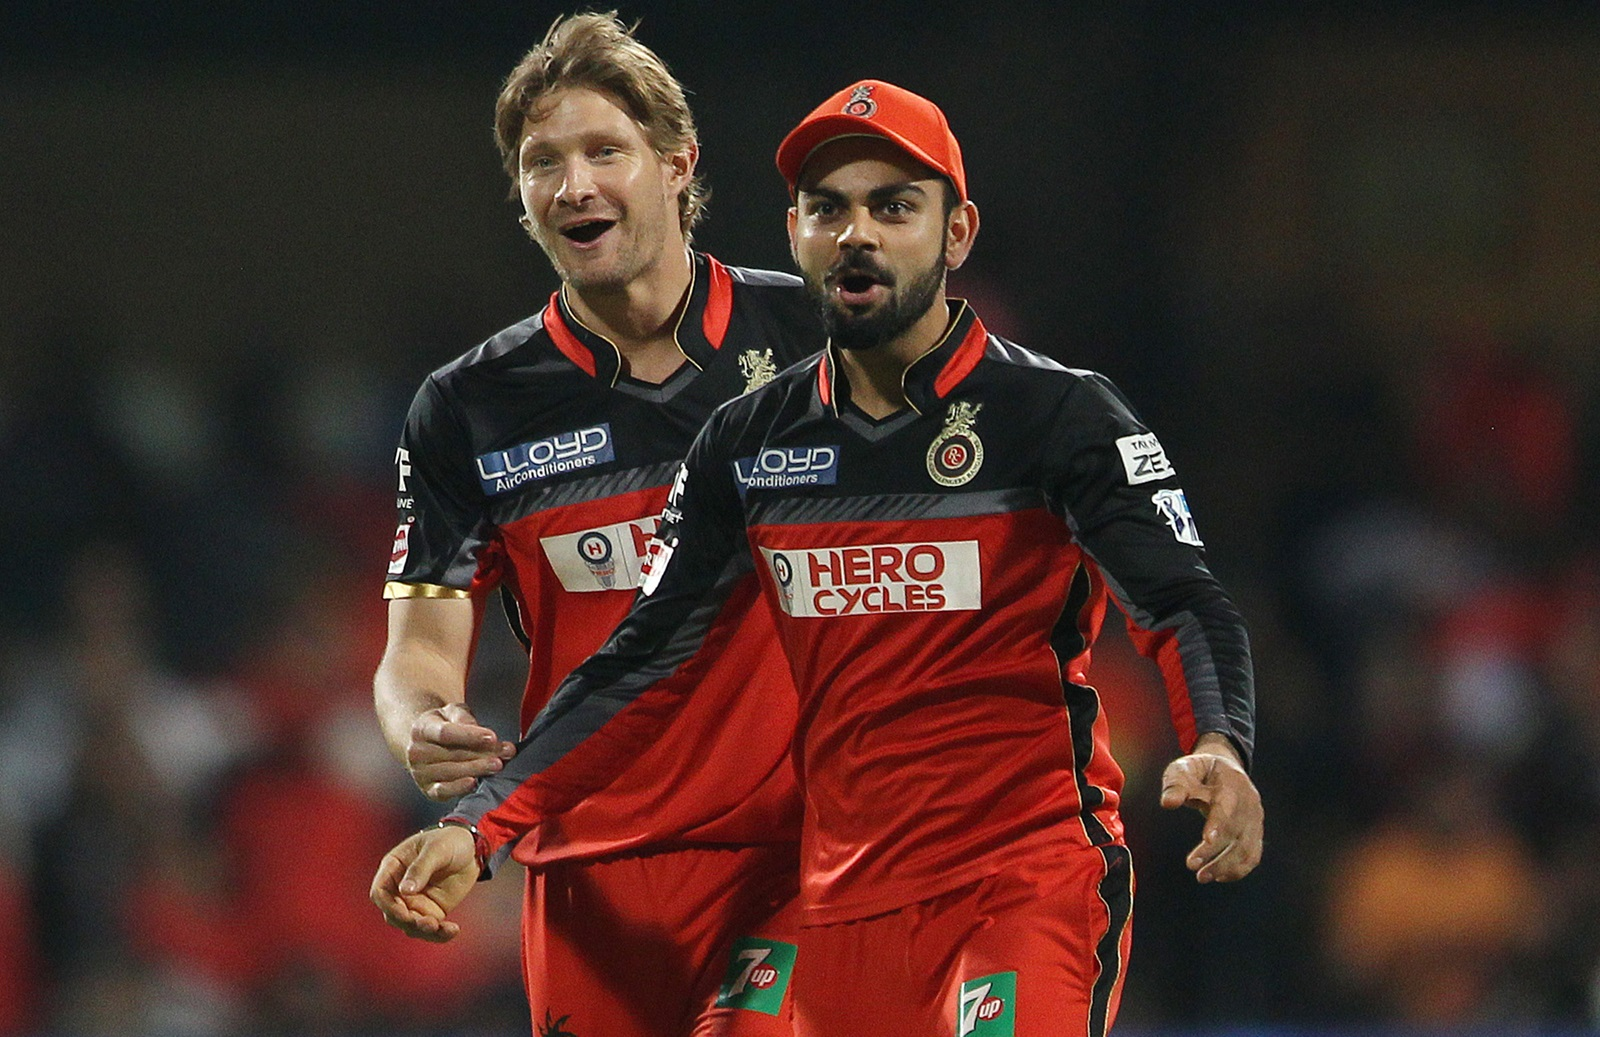 Image result for Watson RCB